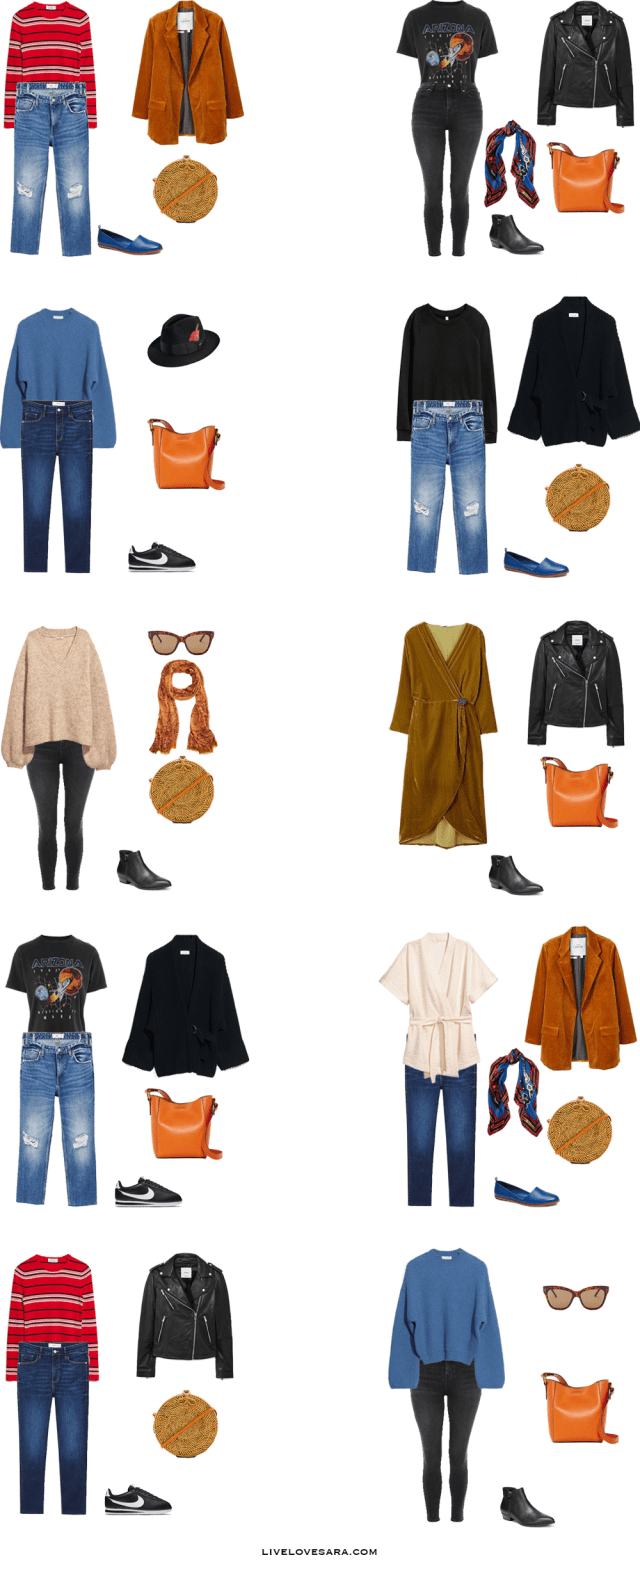 What to Pack for Amsterdam, Netherlands Outfit Options 1-10 | Packing Light | Packing List | Travel Light | Travel Wardrobe | Travel l Capsule | Capsule | Capsule Wardrobe | Travel | Travel tips | What to Pack | Amsterdam | What to Wear | Livelovesara